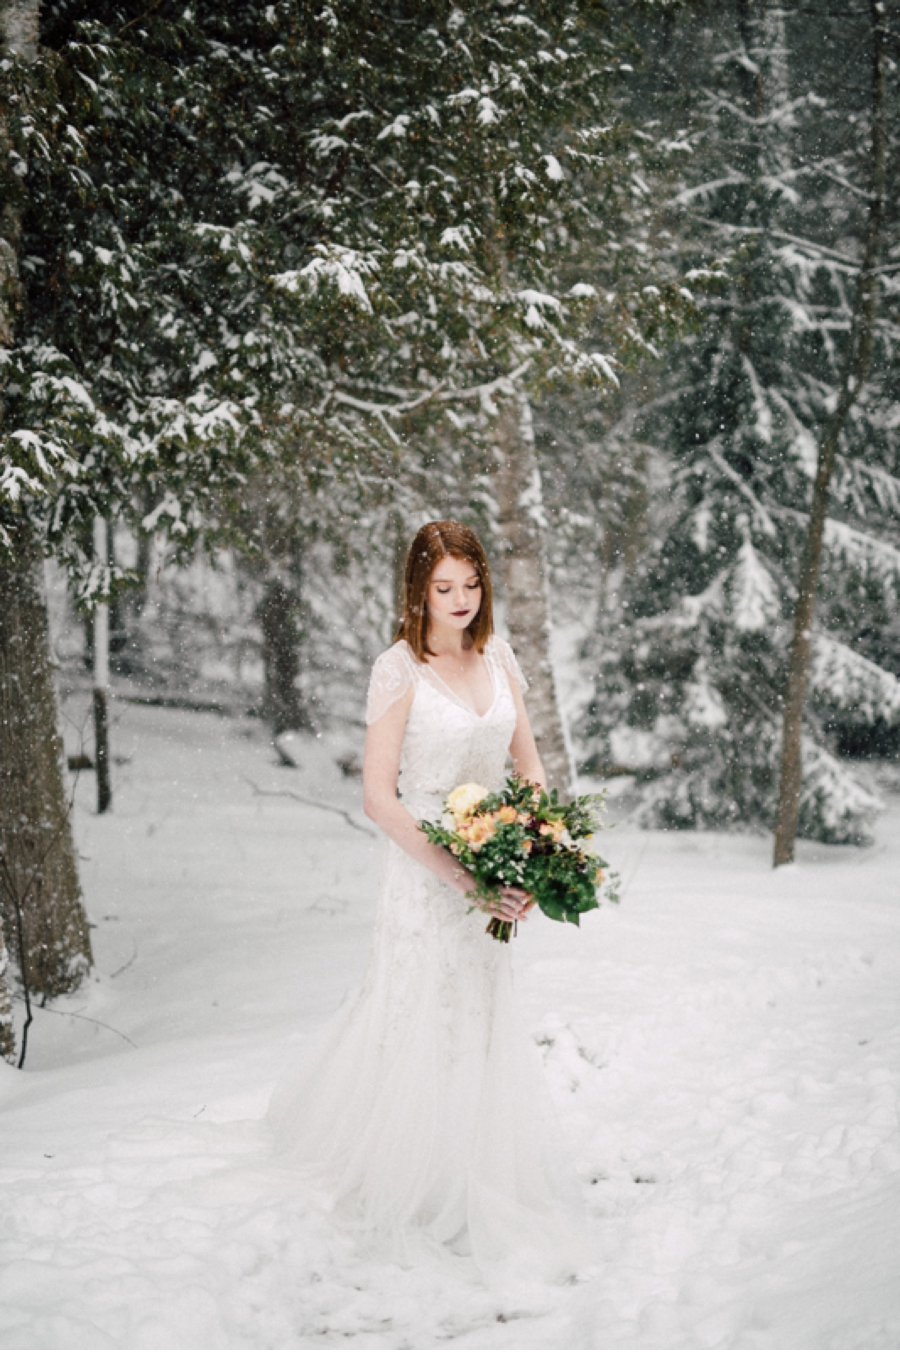 Ontario-Winter-Wedding